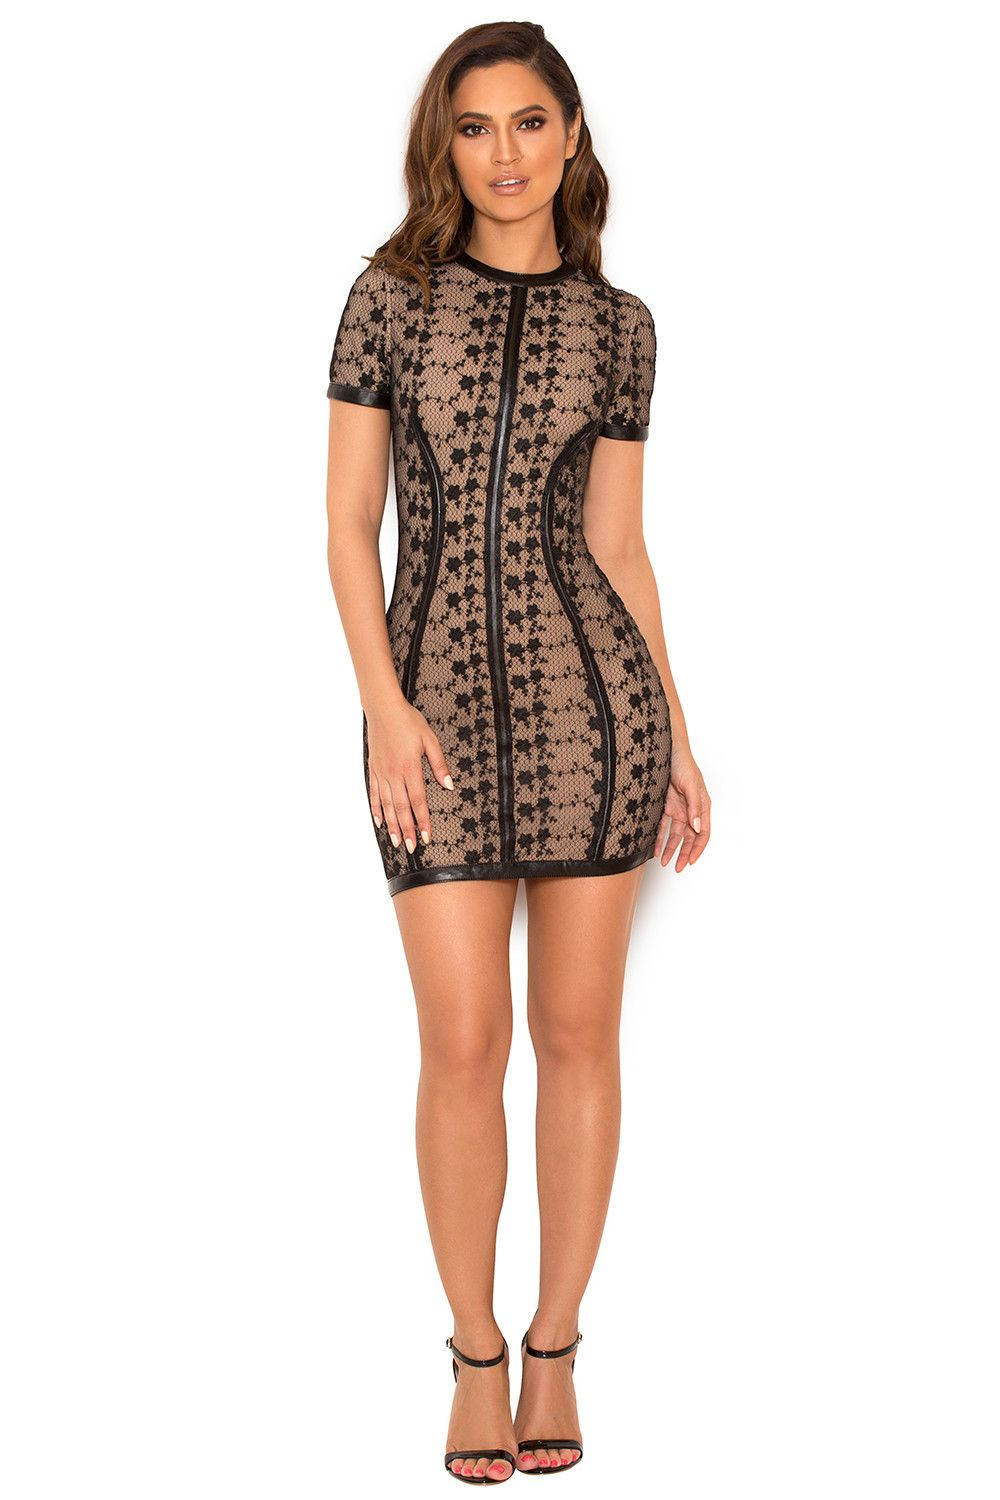 Clothing : Bodycon Dresses : 'Calvina' Black Lace Mini Dress